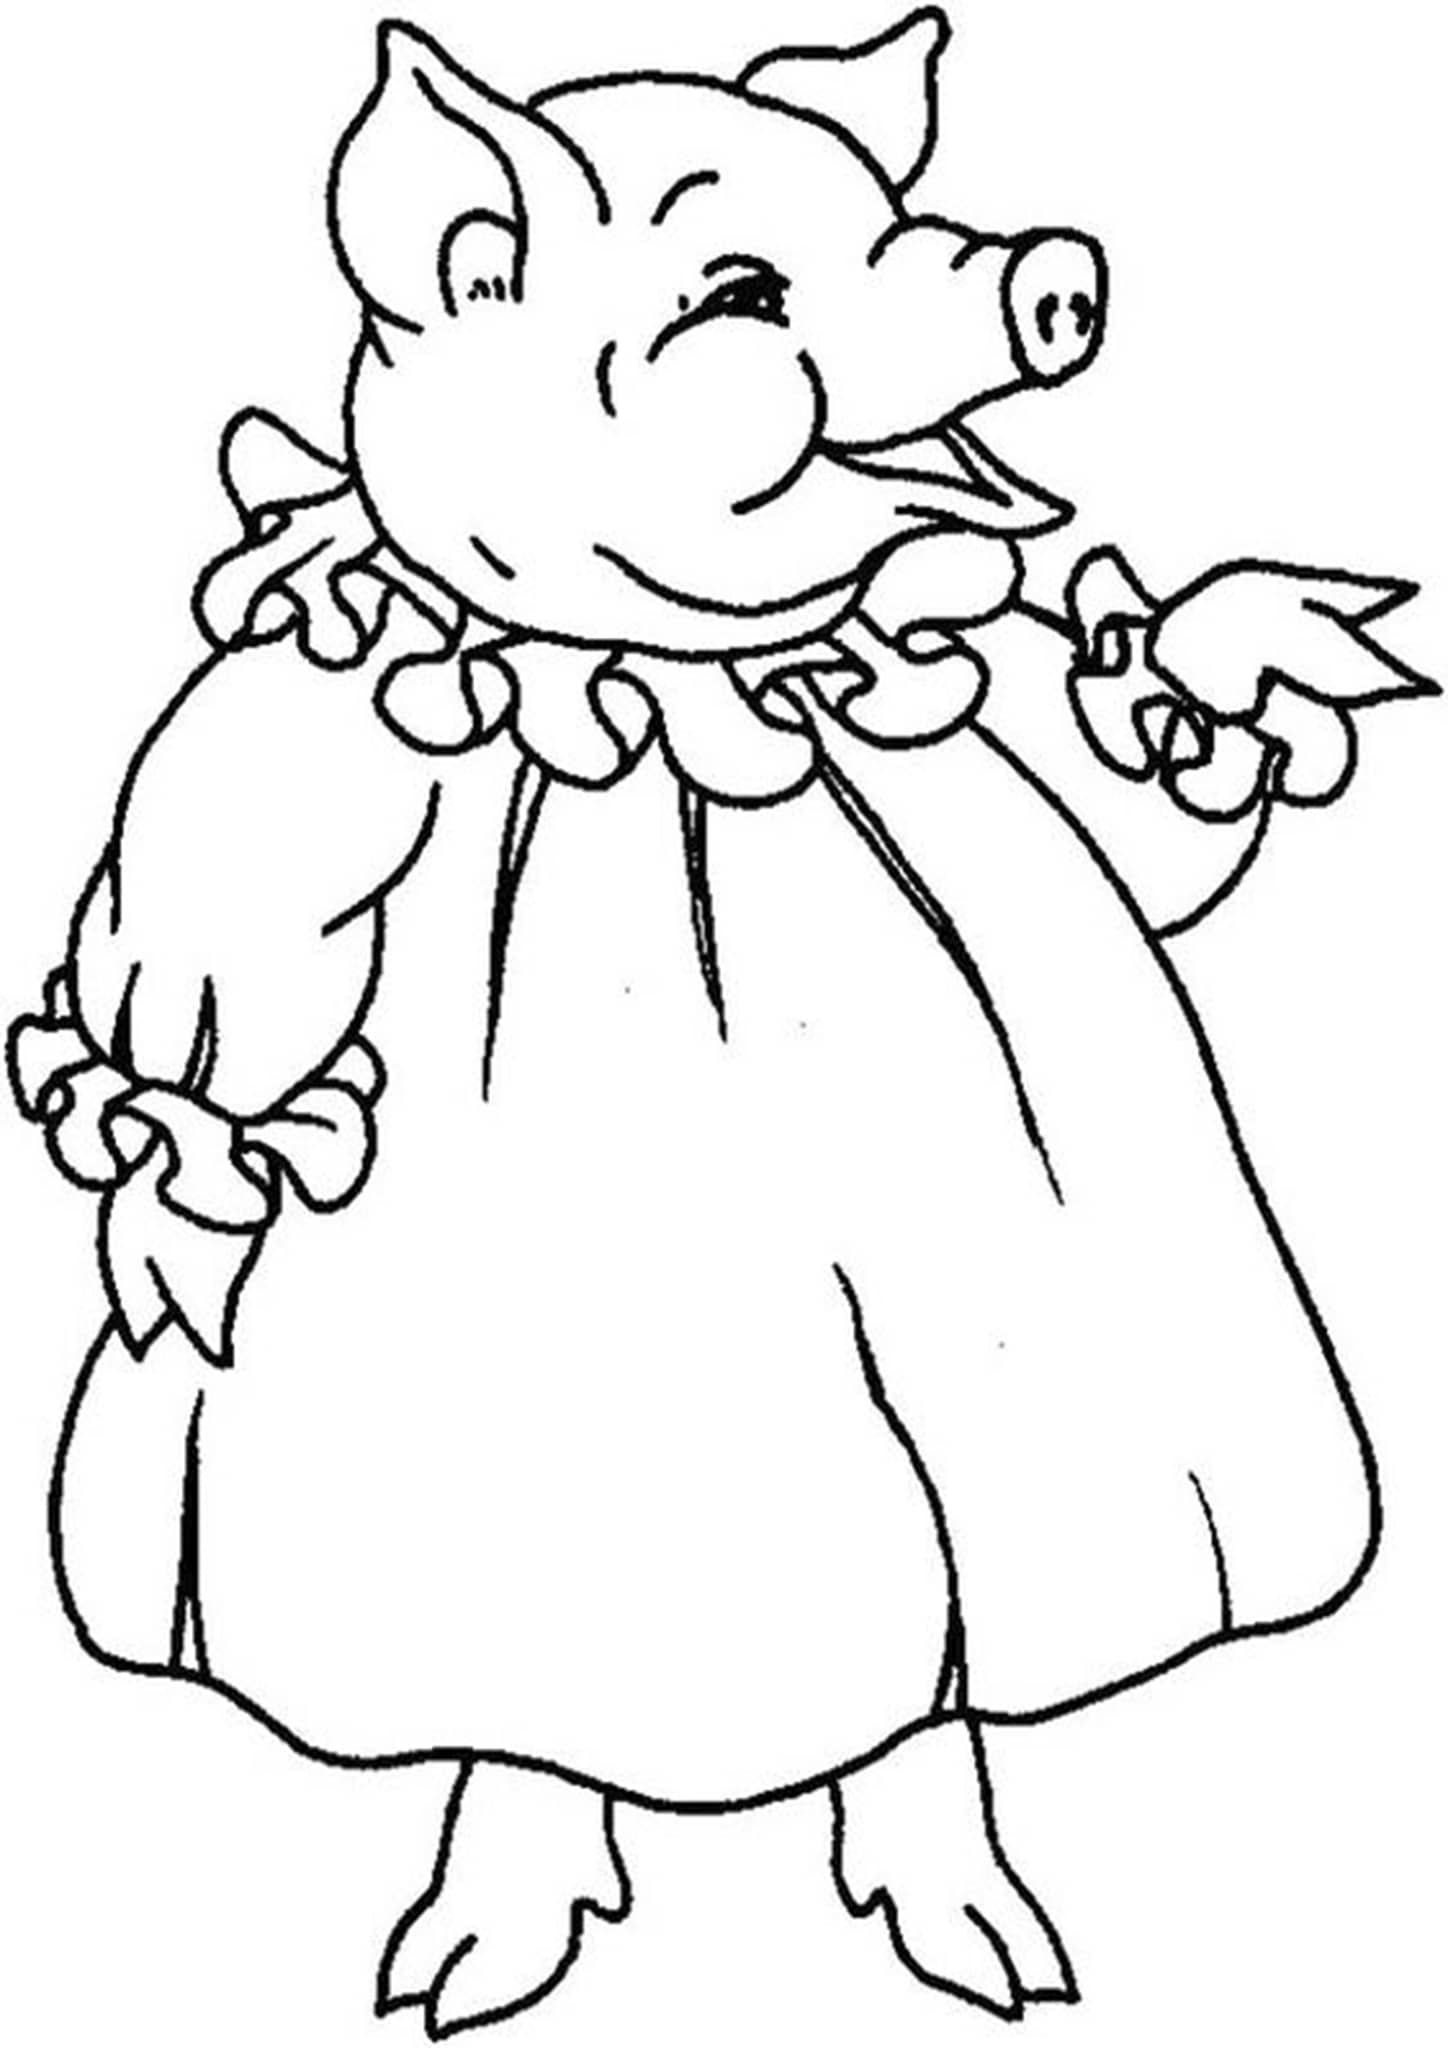 Free Easy To Print Pig Coloring Pages Pig Coloring Page Dinosaur Coloring Pages Coloring Pages